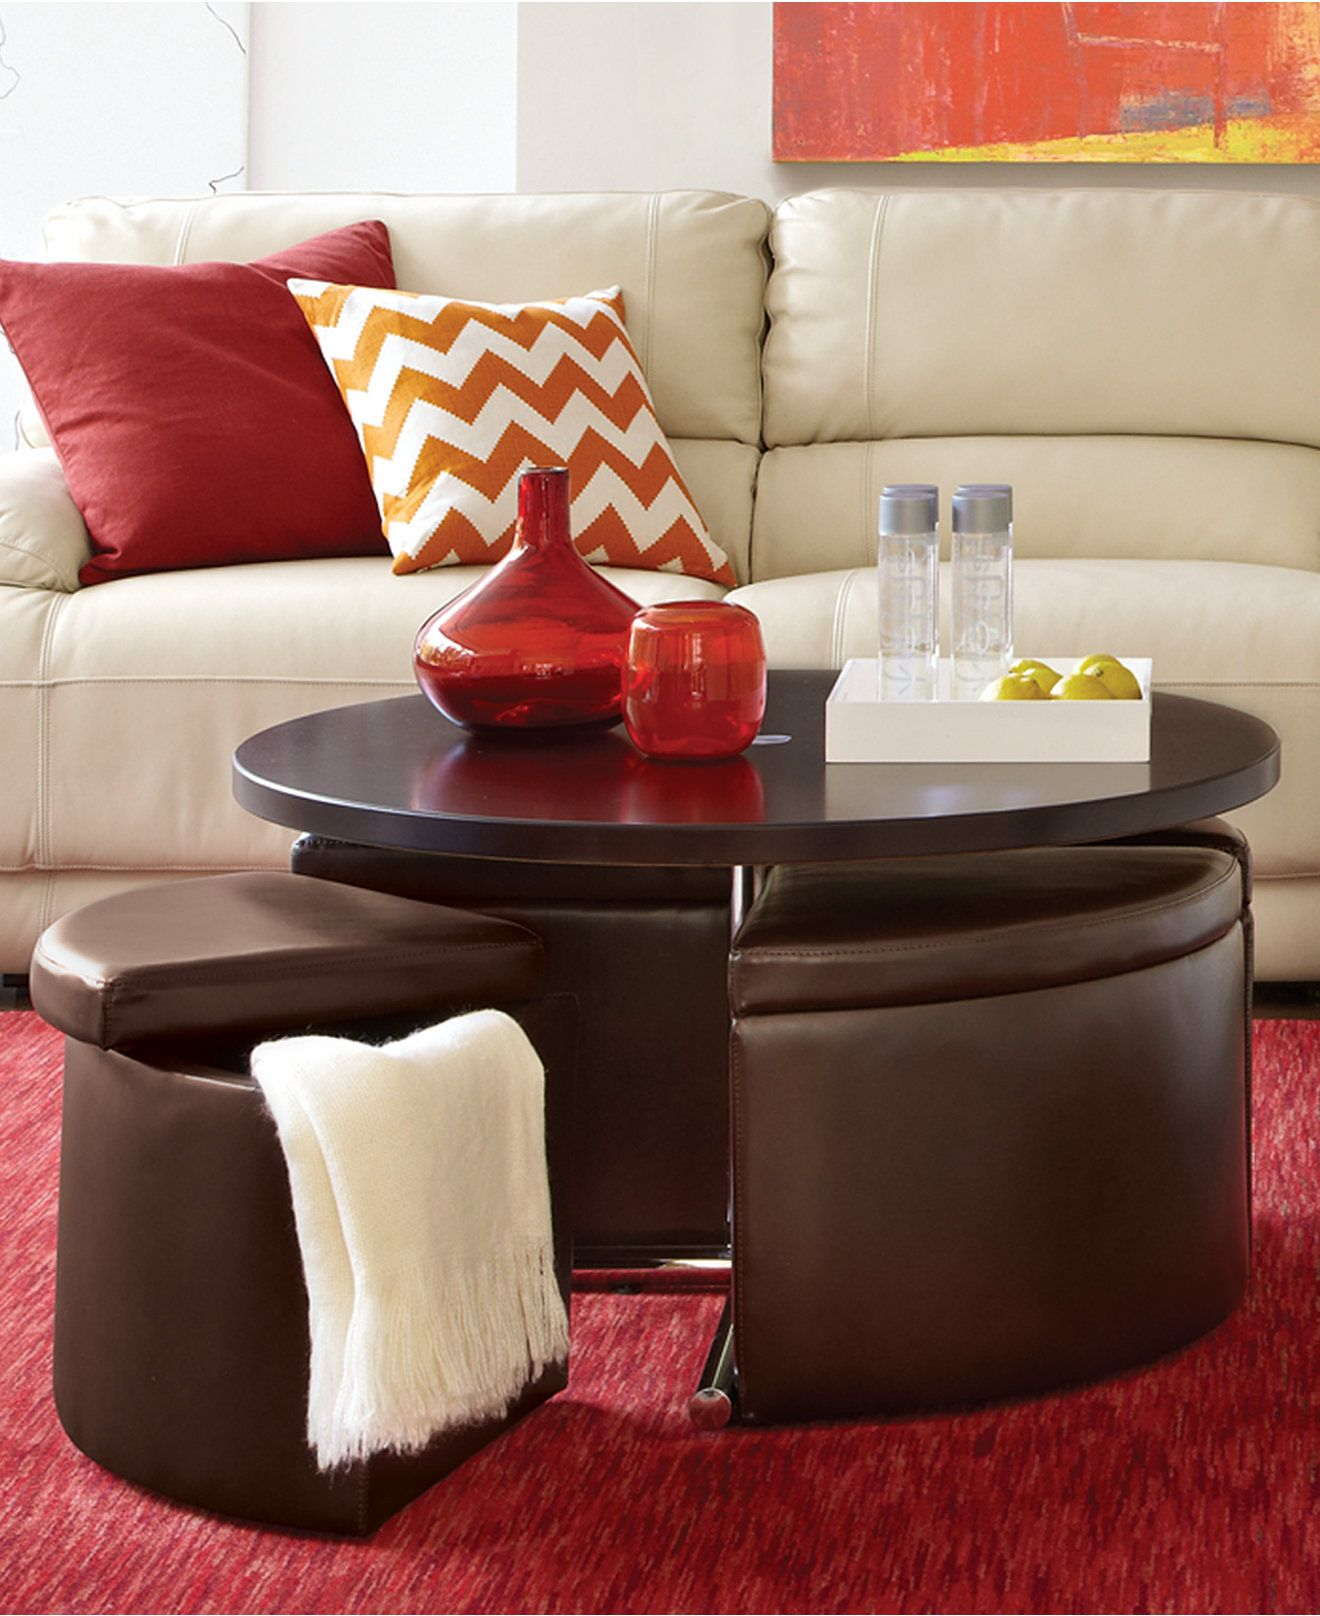 Neptune Coffee Table With Storage Ottomans Furniture Macy S Coffee Table With Storage Coffee Table With Seating Coffee Table [ 1616 x 1320 Pixel ]